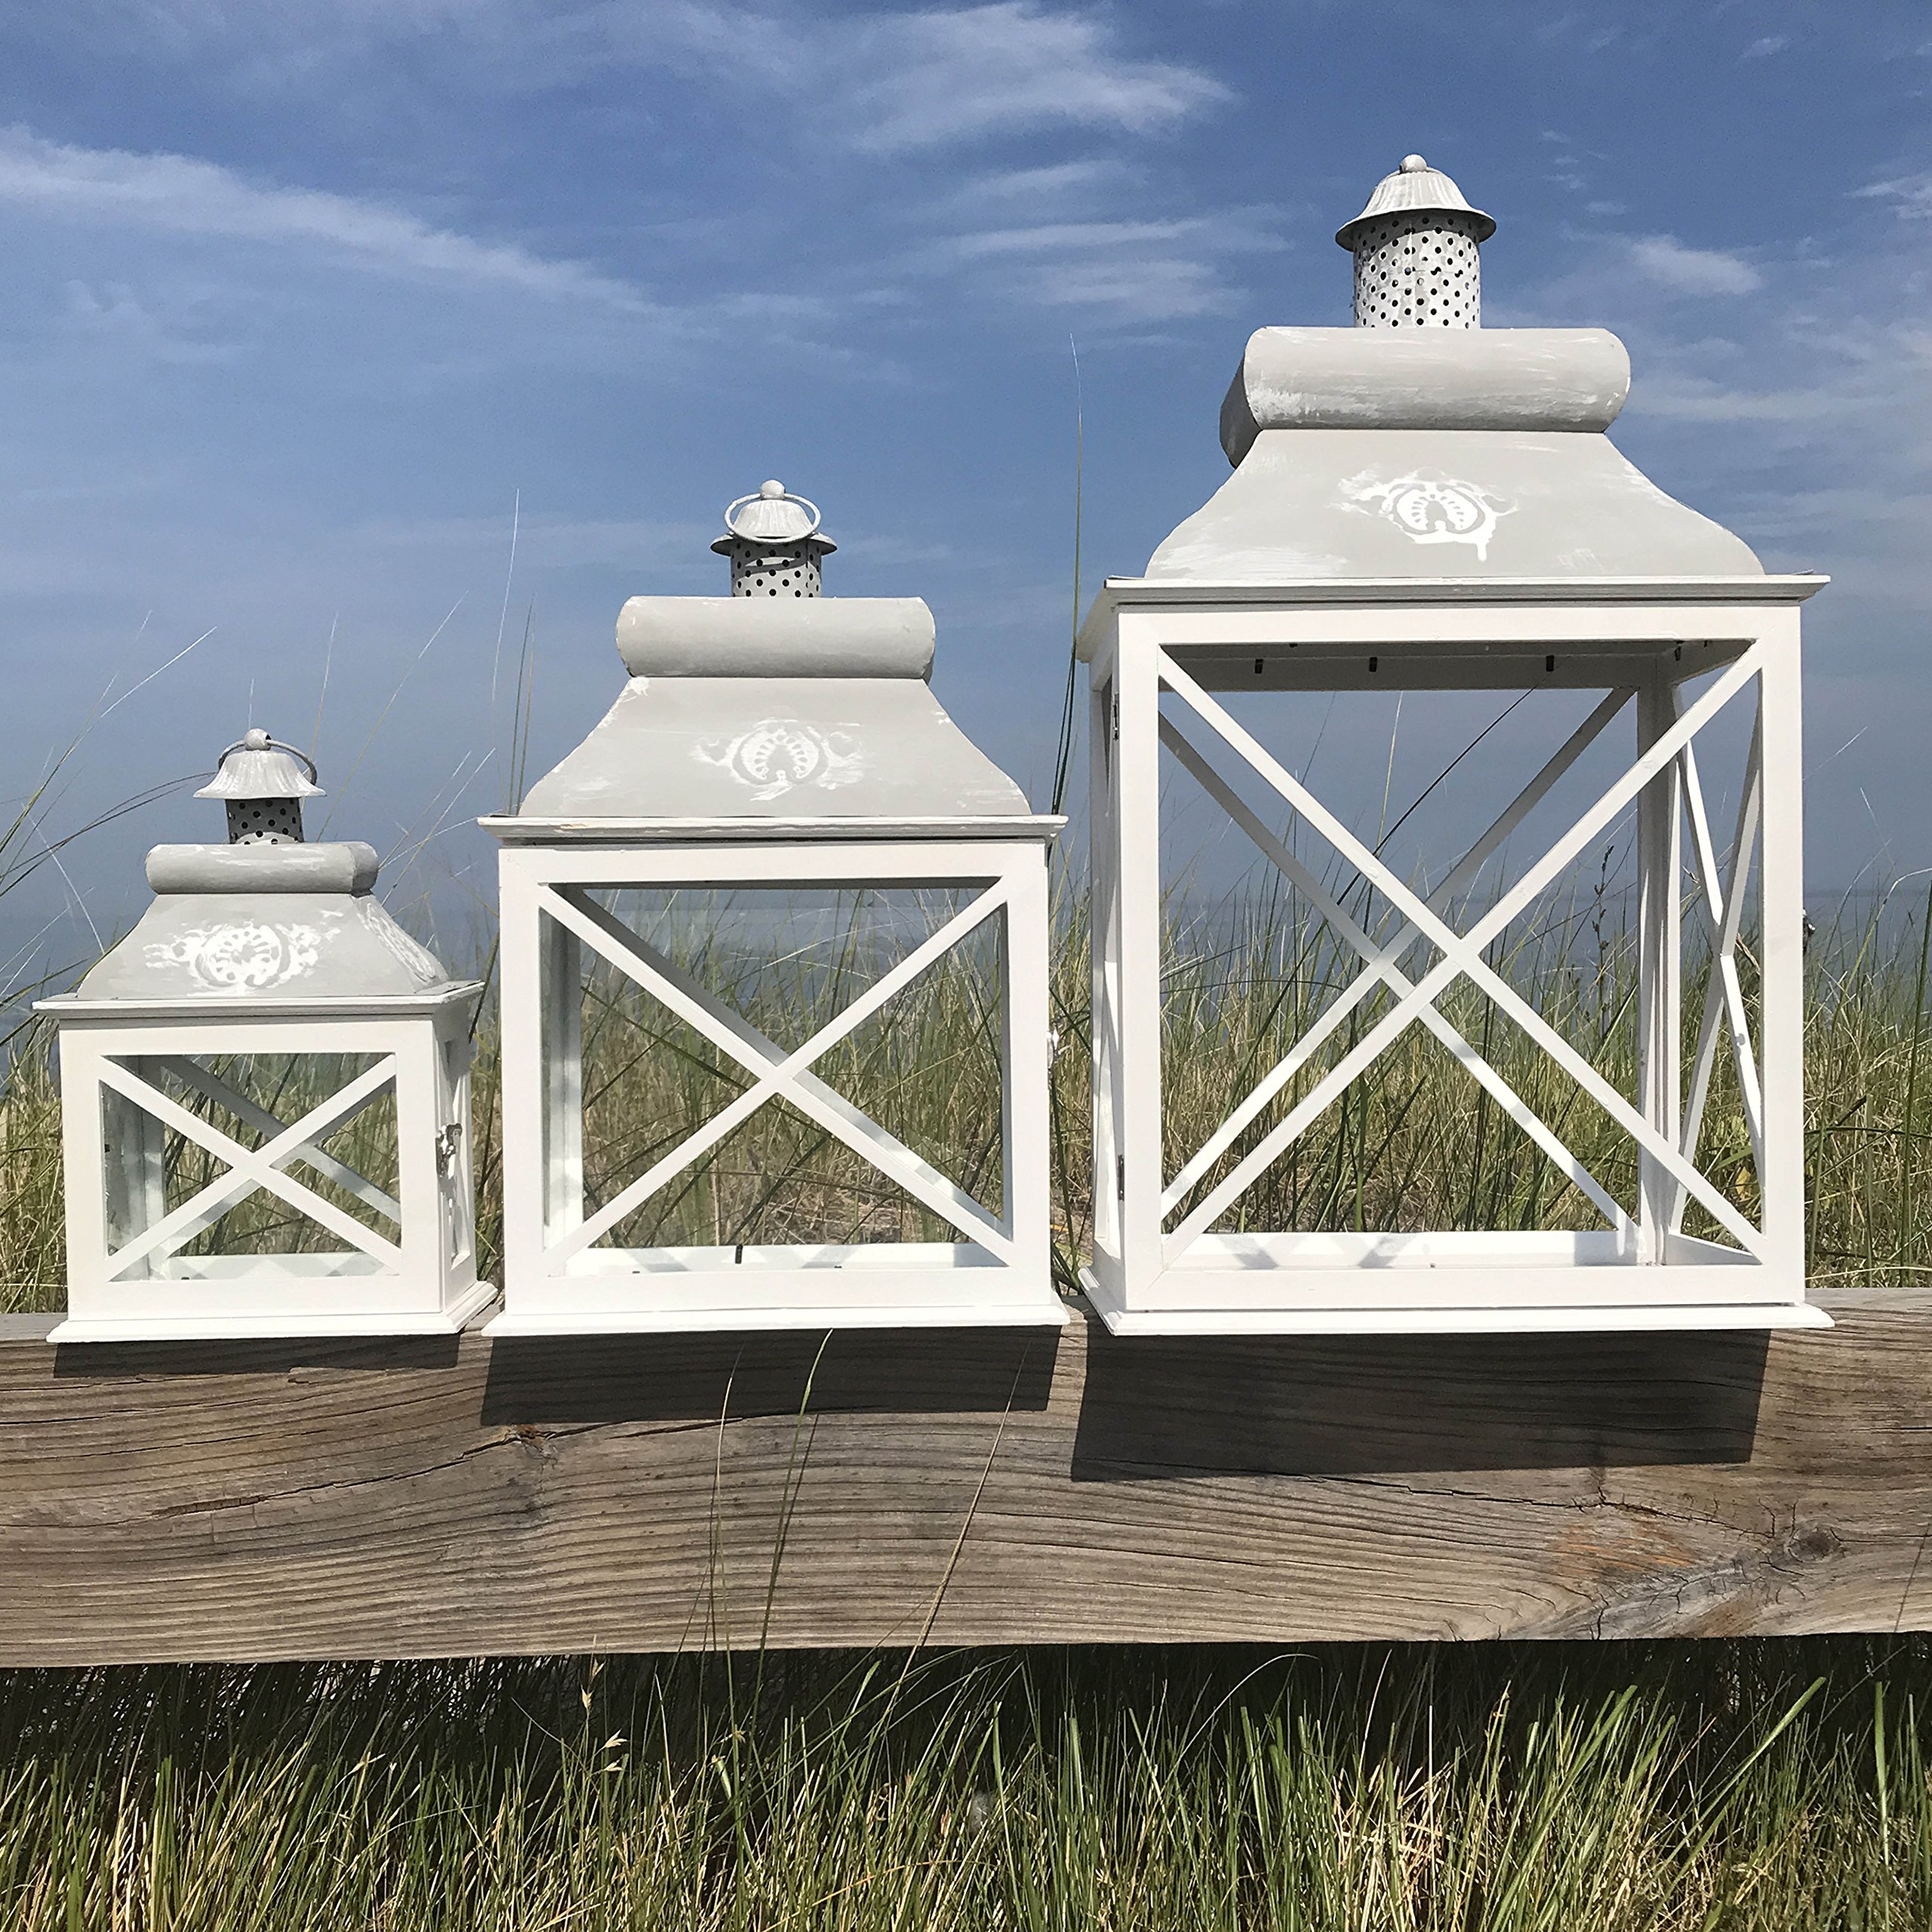 The French Country Style Set of 3 Rustic Lanterns, Chateaux Style Roof, Raised Medallion, Gray Distressed Surface, Galvanized Metal Reflective Bottom, Glass, Wooden Cross Post Panels, Various Sizes by Whole House Worlds